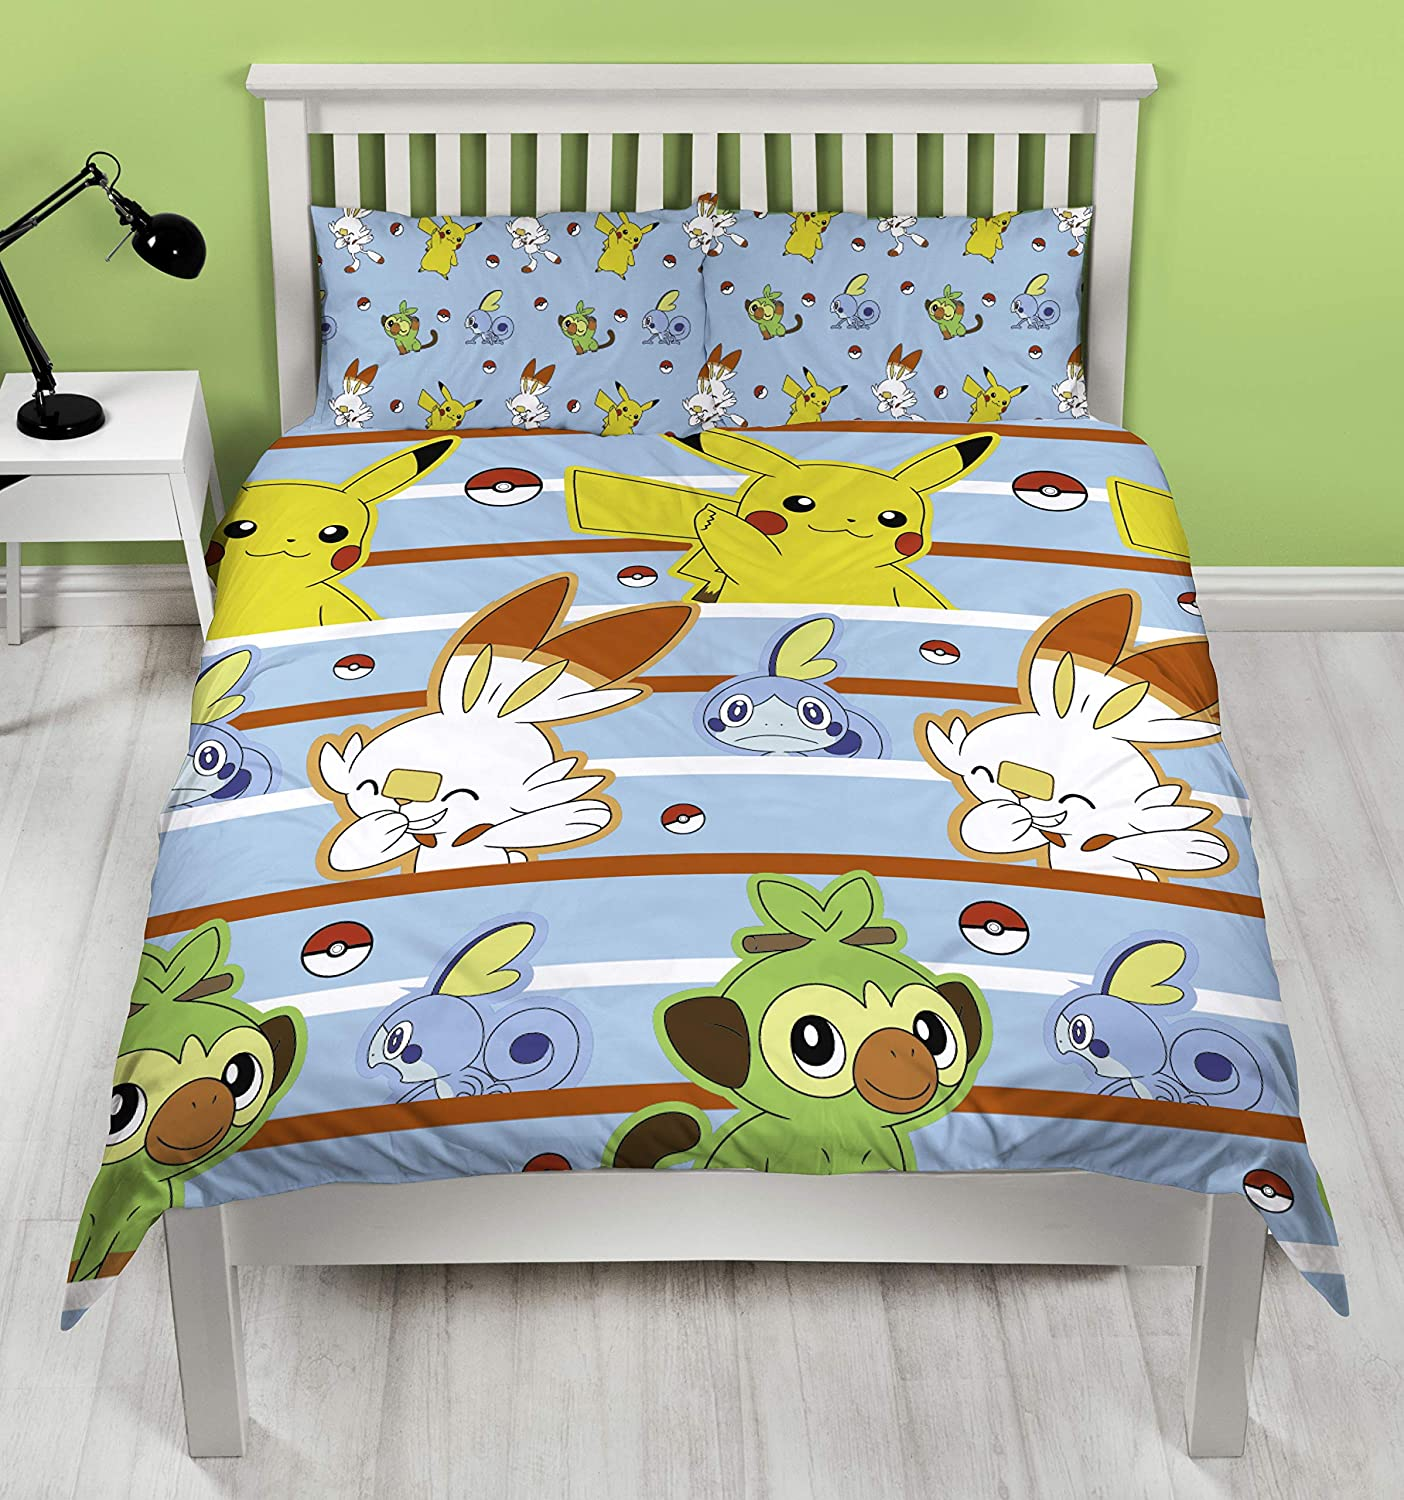 and Sobble Inc Officially Licensed Blue Polycotton Reversible Two Sided Design Grookey Pokemon Jump UK Single//US Twin Duvet Cover Featuring Pikachu Scorbunny